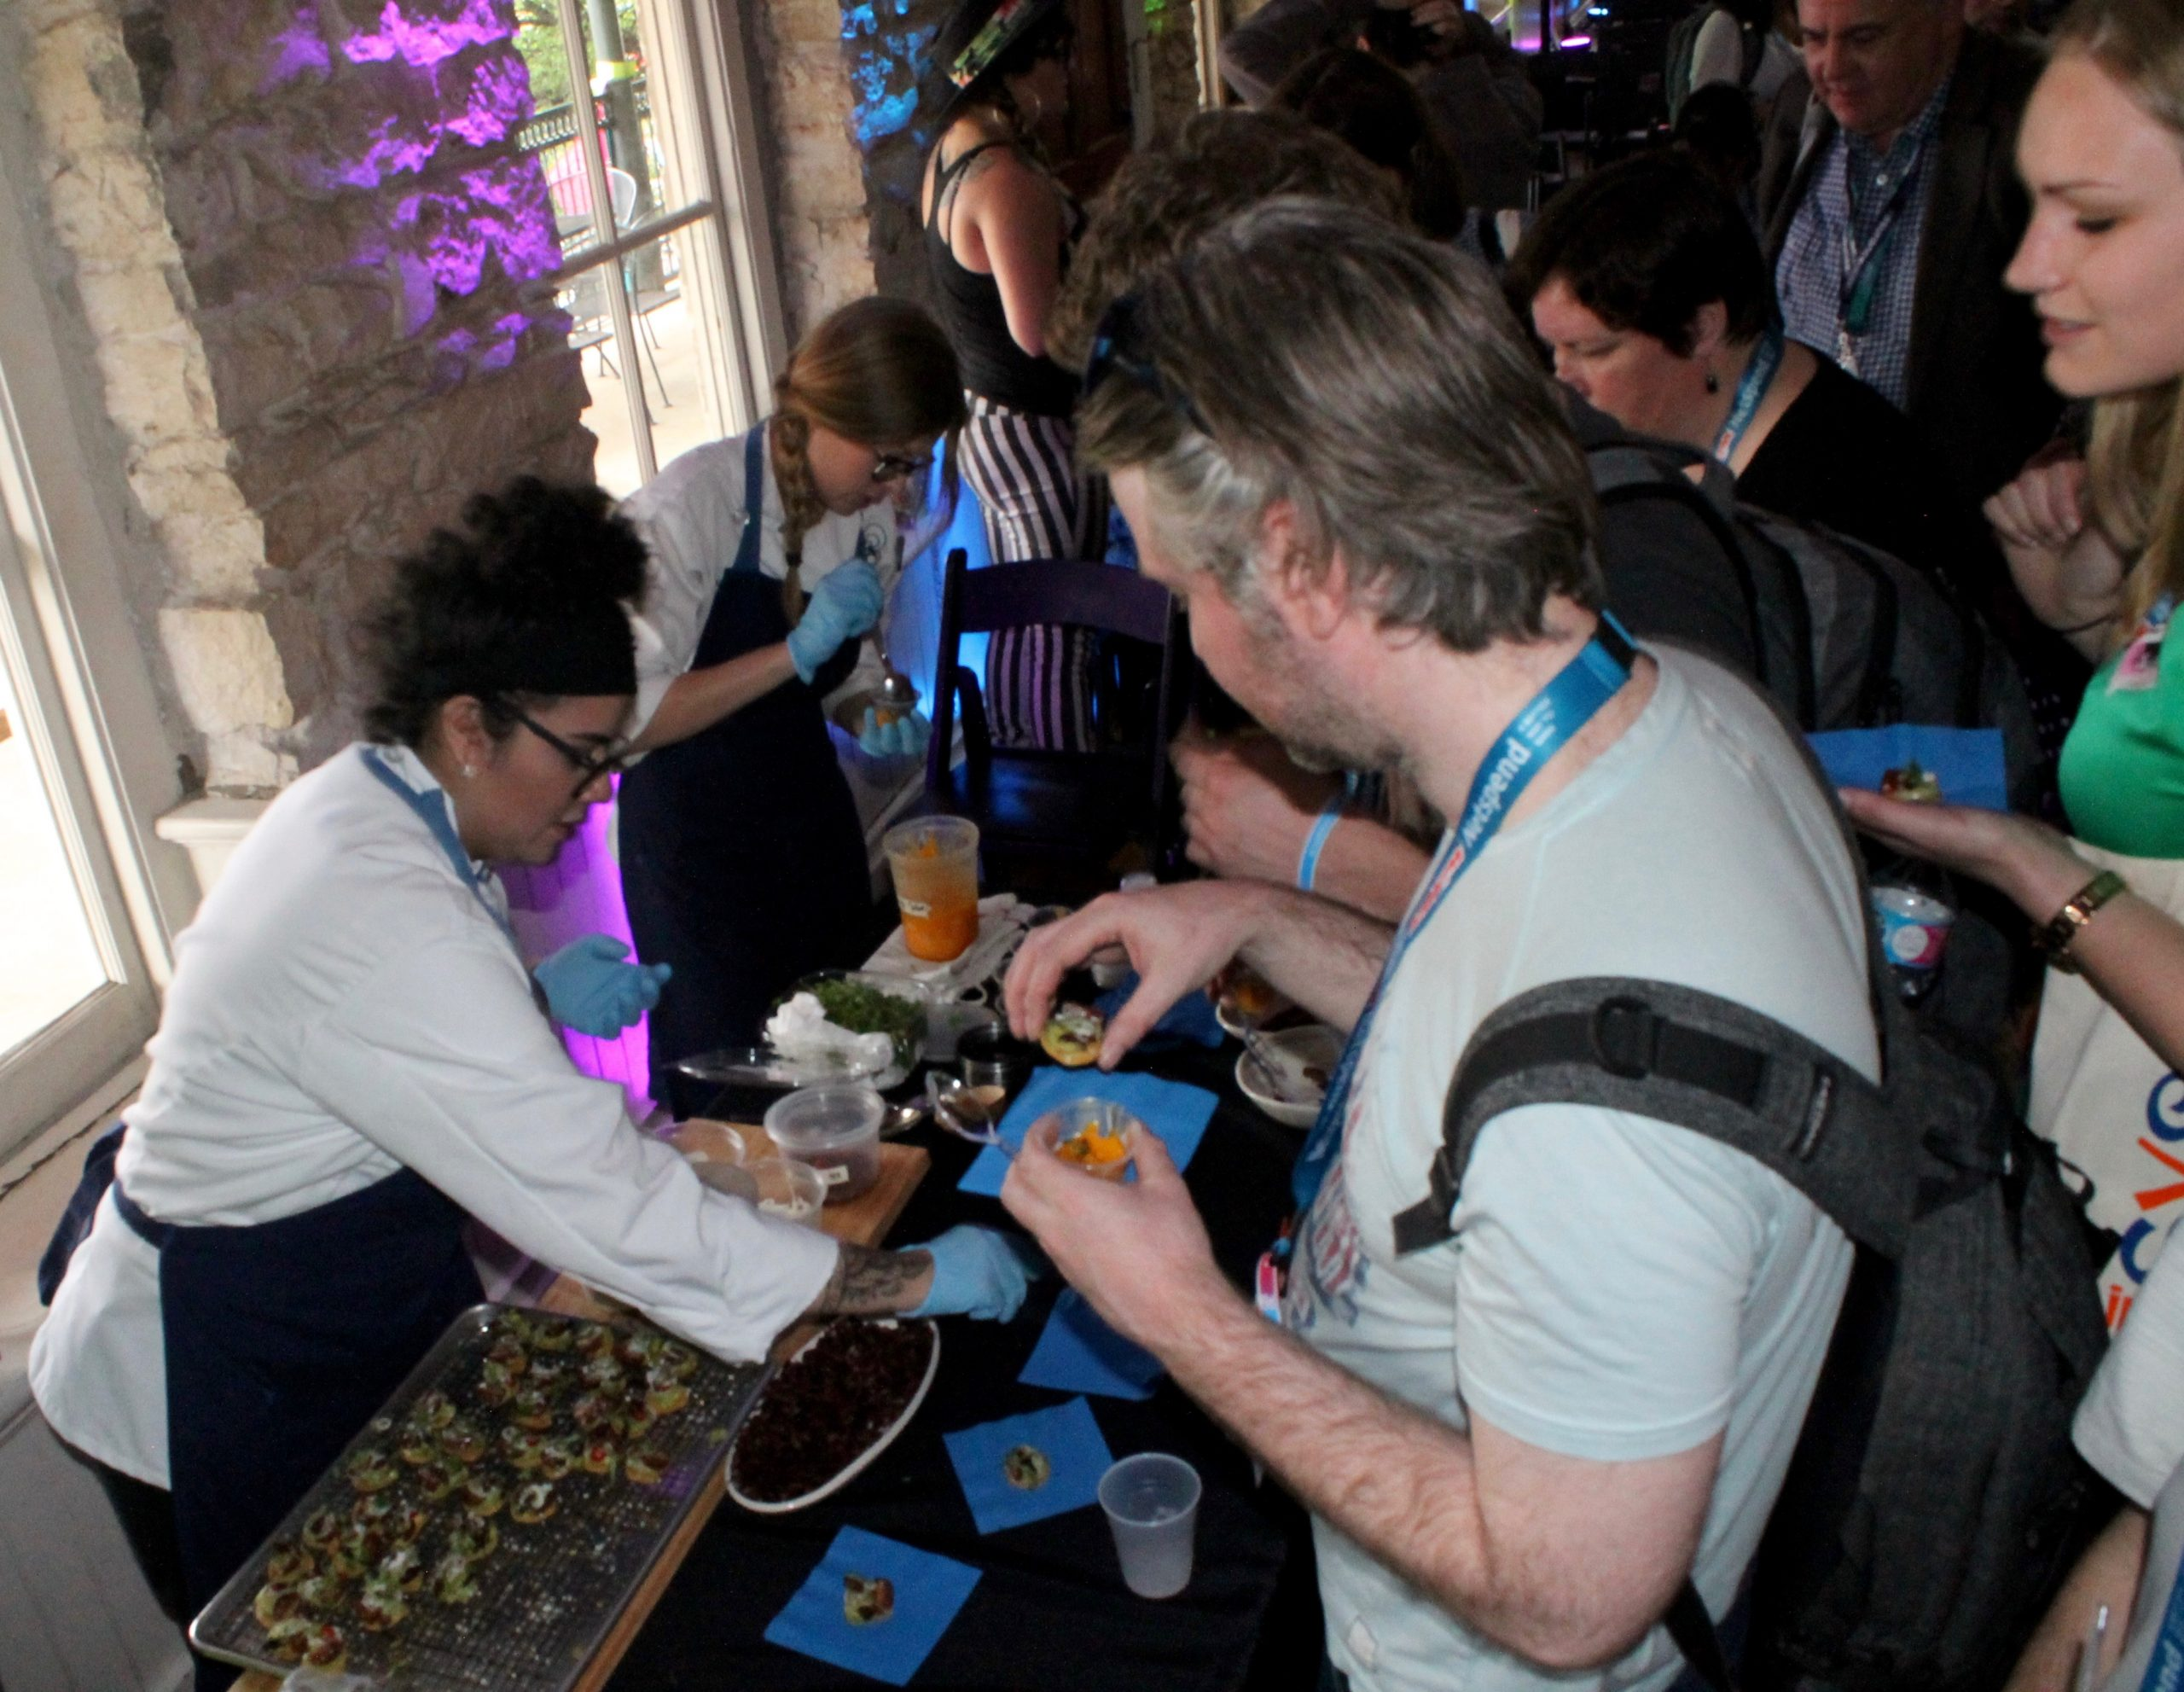 Employees of Mixtli Progressive Mexican Culinaria offer free grasshopper tostadas to panel discussion attendees at the Old School Bar and Grill, aka Casa San Antonio, during South by Southwest on Friday, March 11, 2016. Photo by Edmond Ortiz